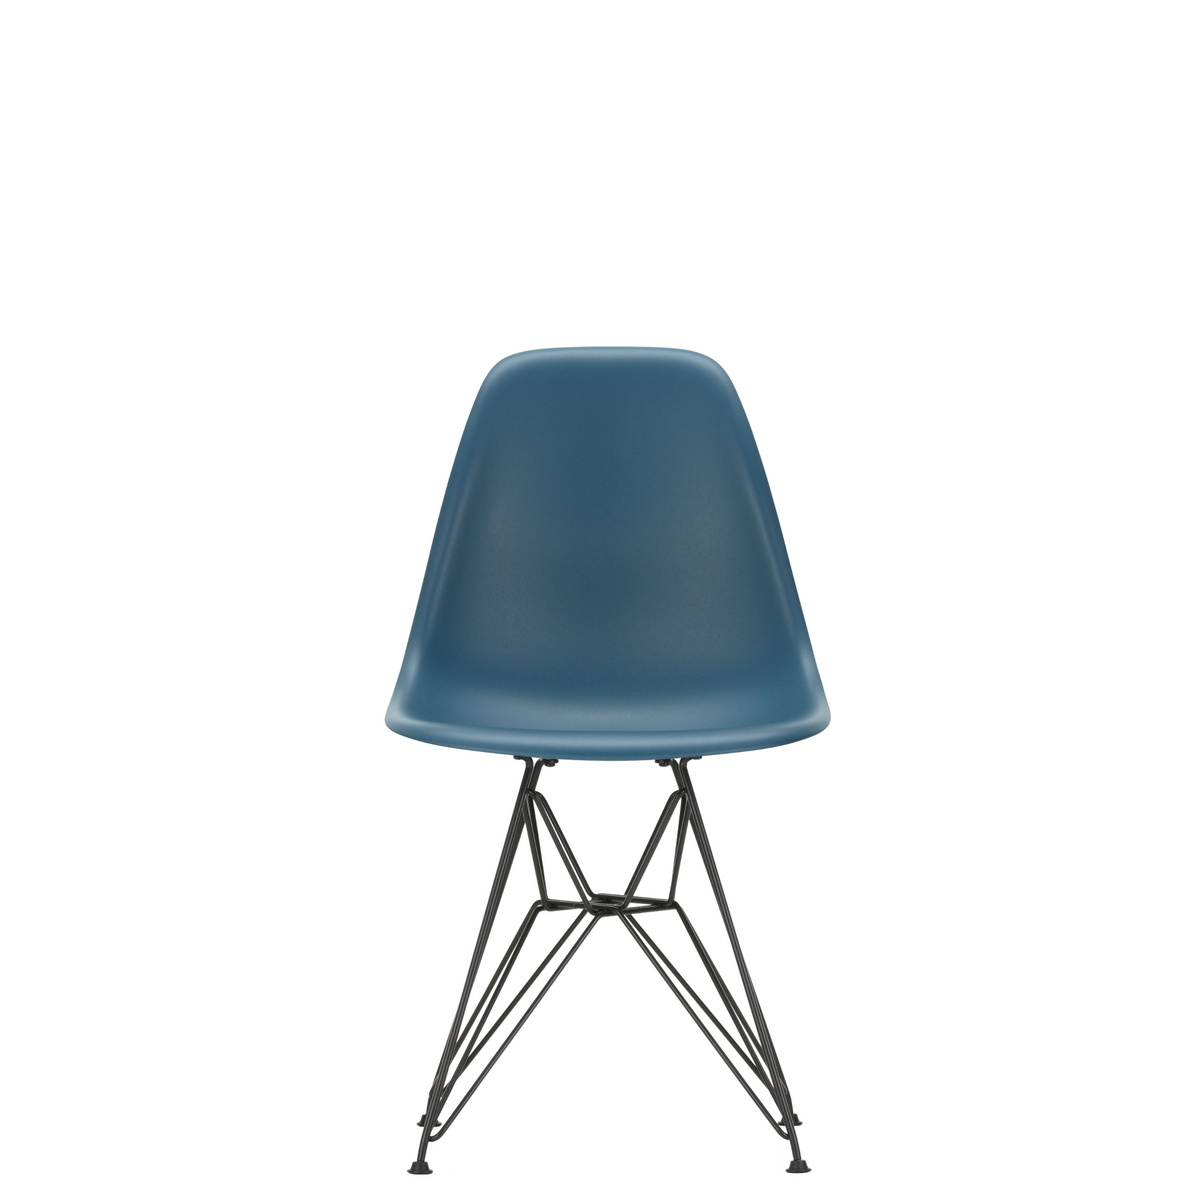 Vitra Eames Plastic Side Chair DSR Powder Coated for Outdoor Use Sea Blue Shell Black Powdercoated Base